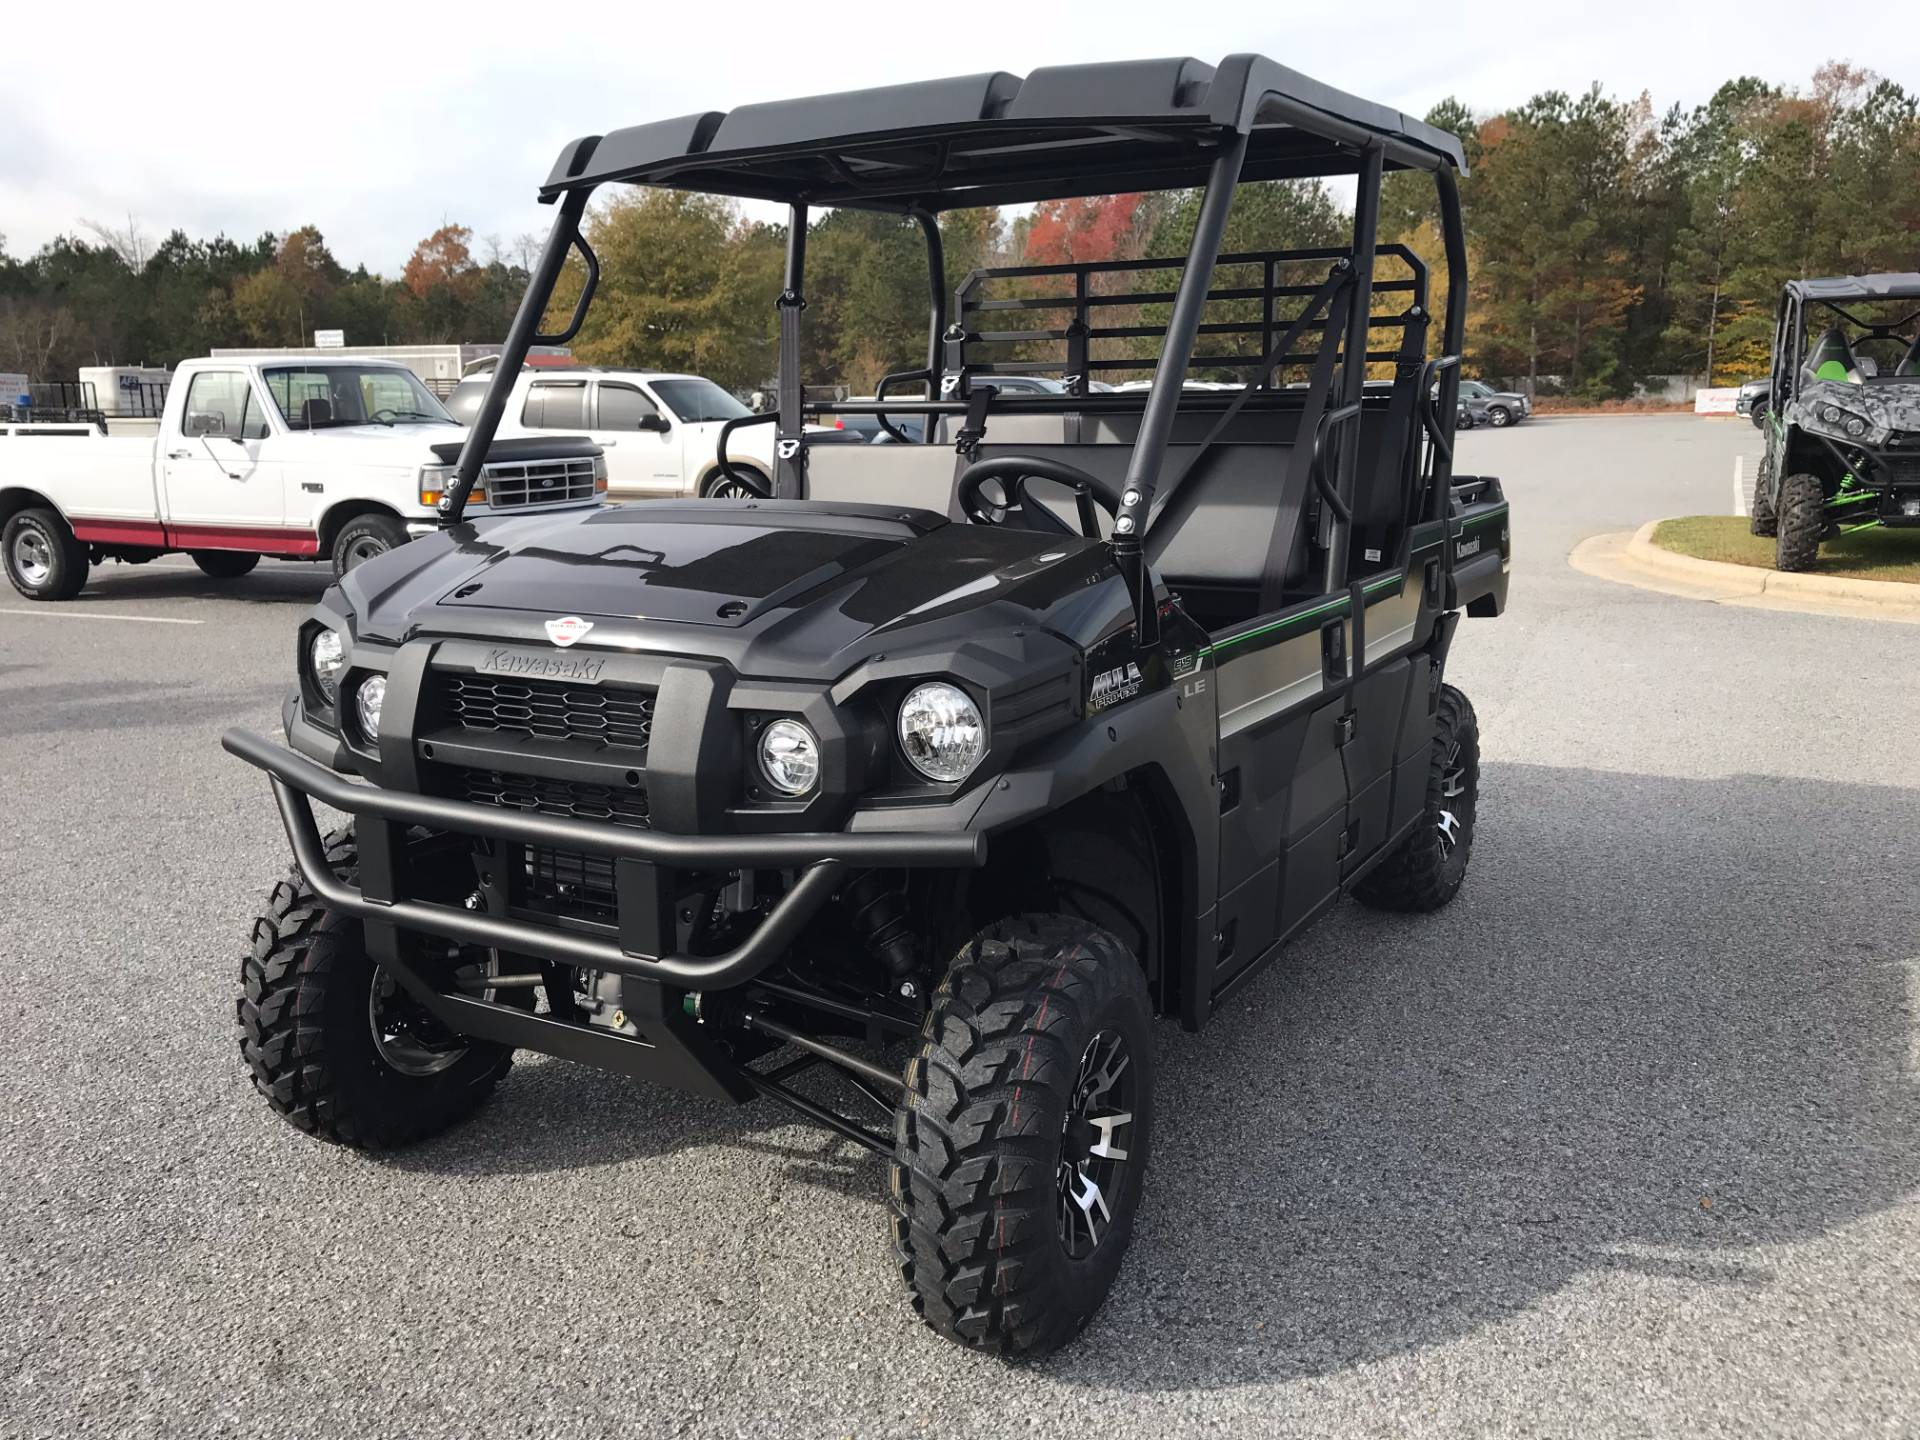 2018 Kawasaki Mule PRO-FXT EPS LE in Greenville, North Carolina - Photo 7